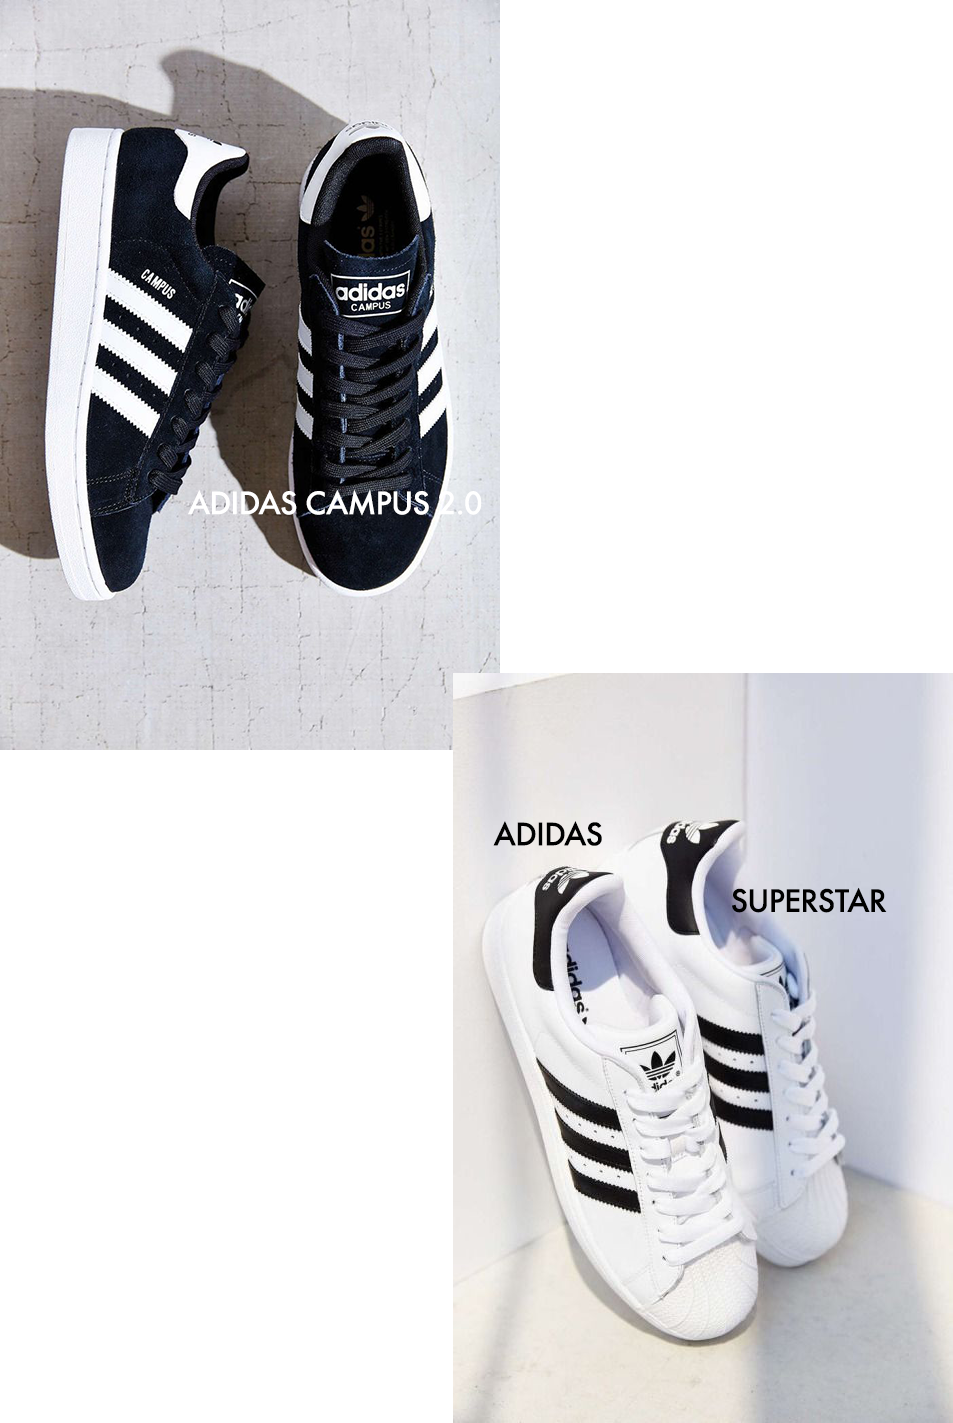 Adidas Superstar + Campus 2.0 || 90s trends sneakers || Allegory of Vanity